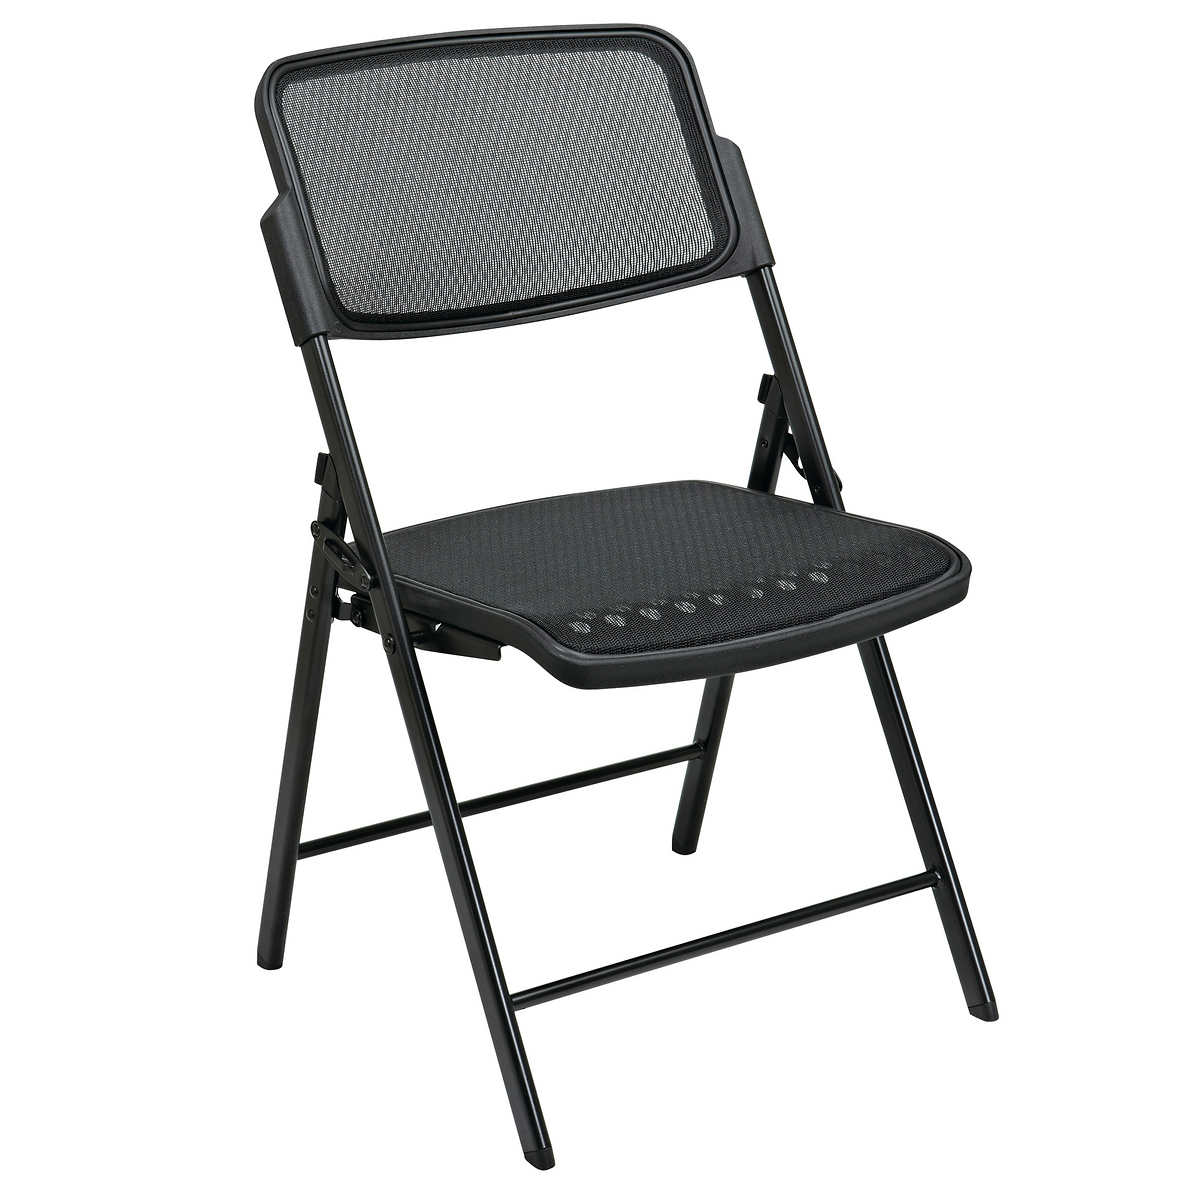 Black folding chairs - 48 Pack Pro Line Progrid Seat And Back Folding Chair